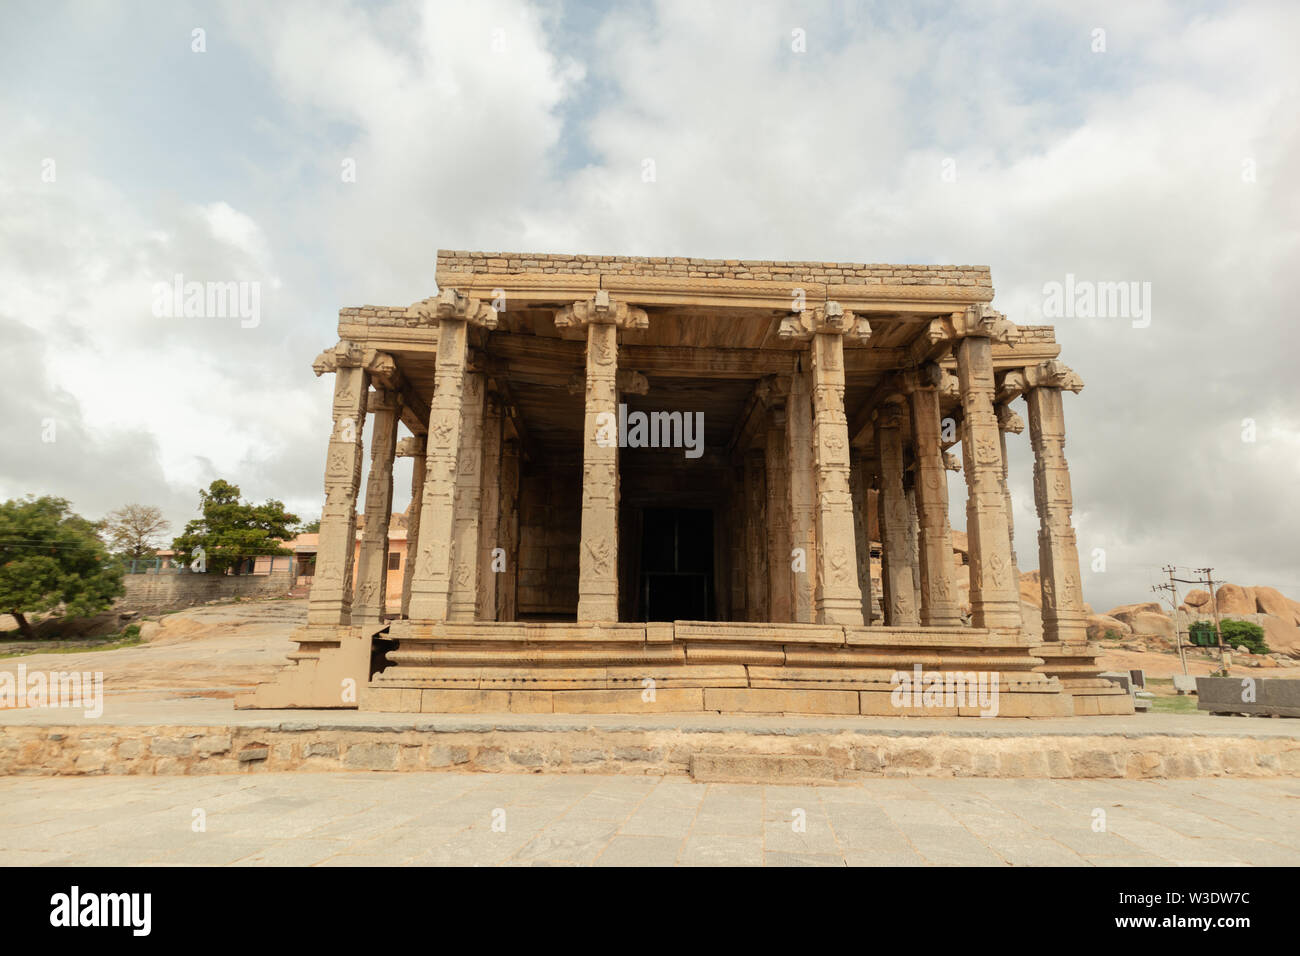 Holy Kadale Kalu ganesha temple in Hampi, Karnataka, India - Stock Image